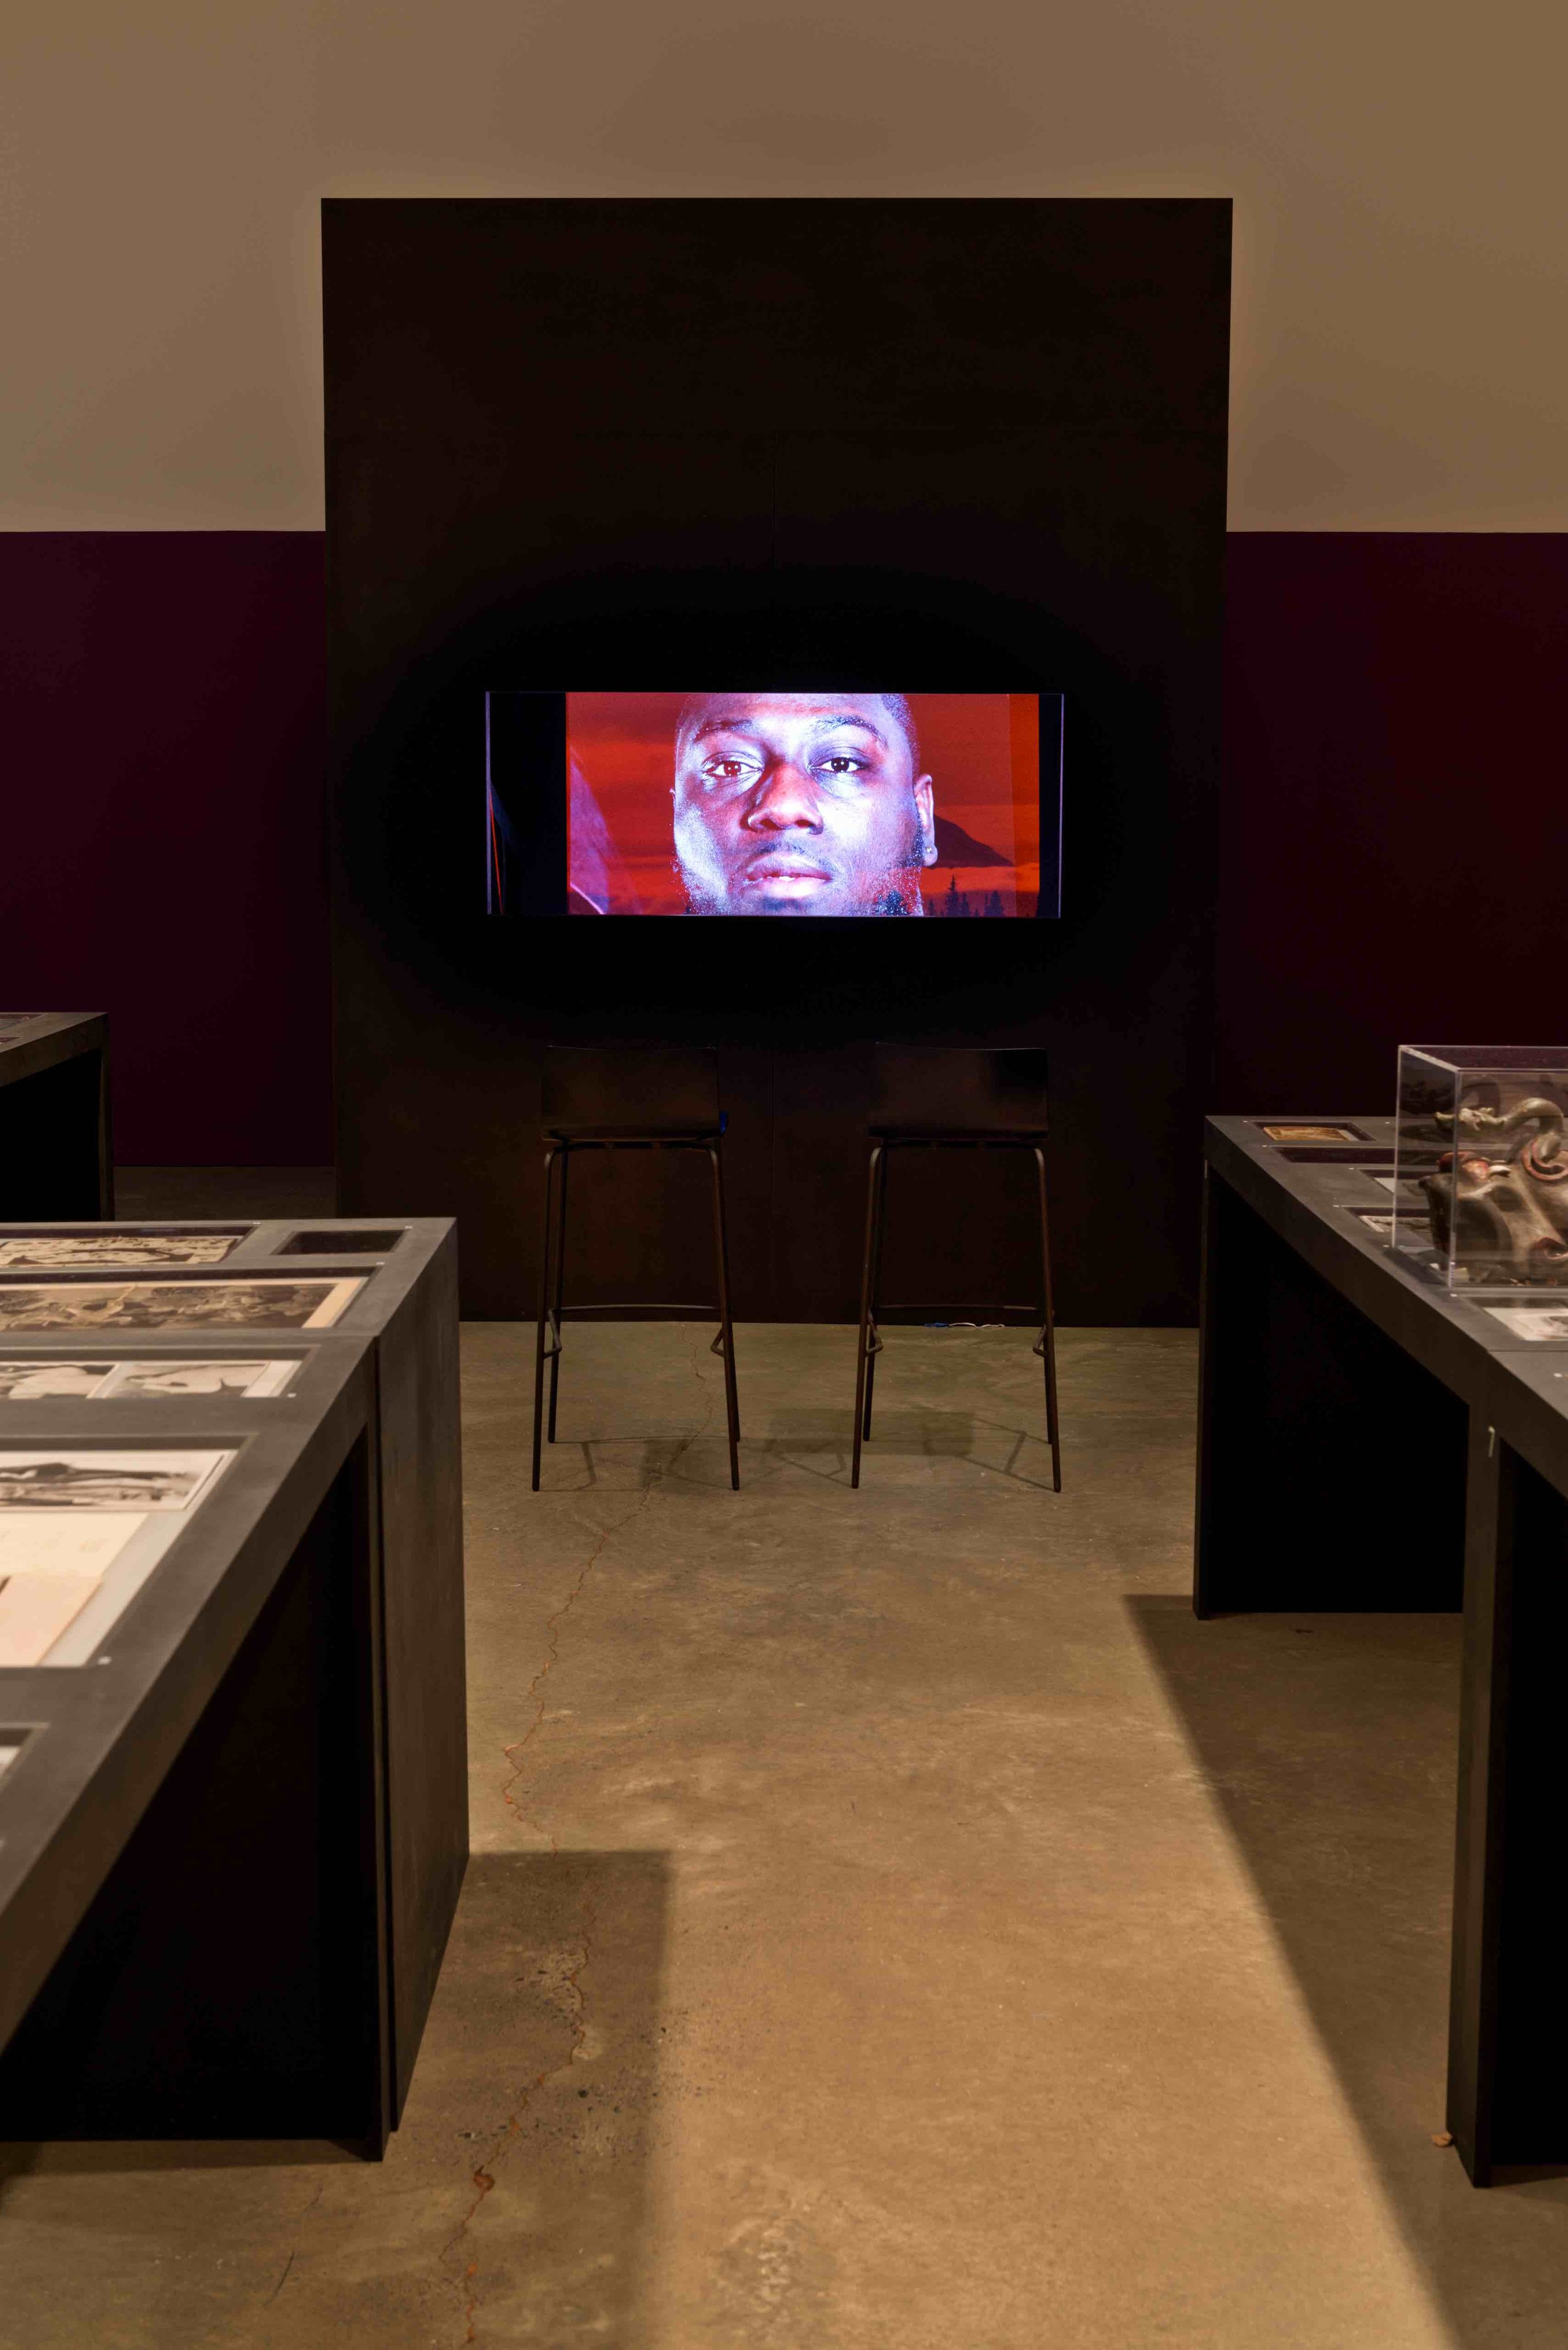 Installation View - Le Volcan film